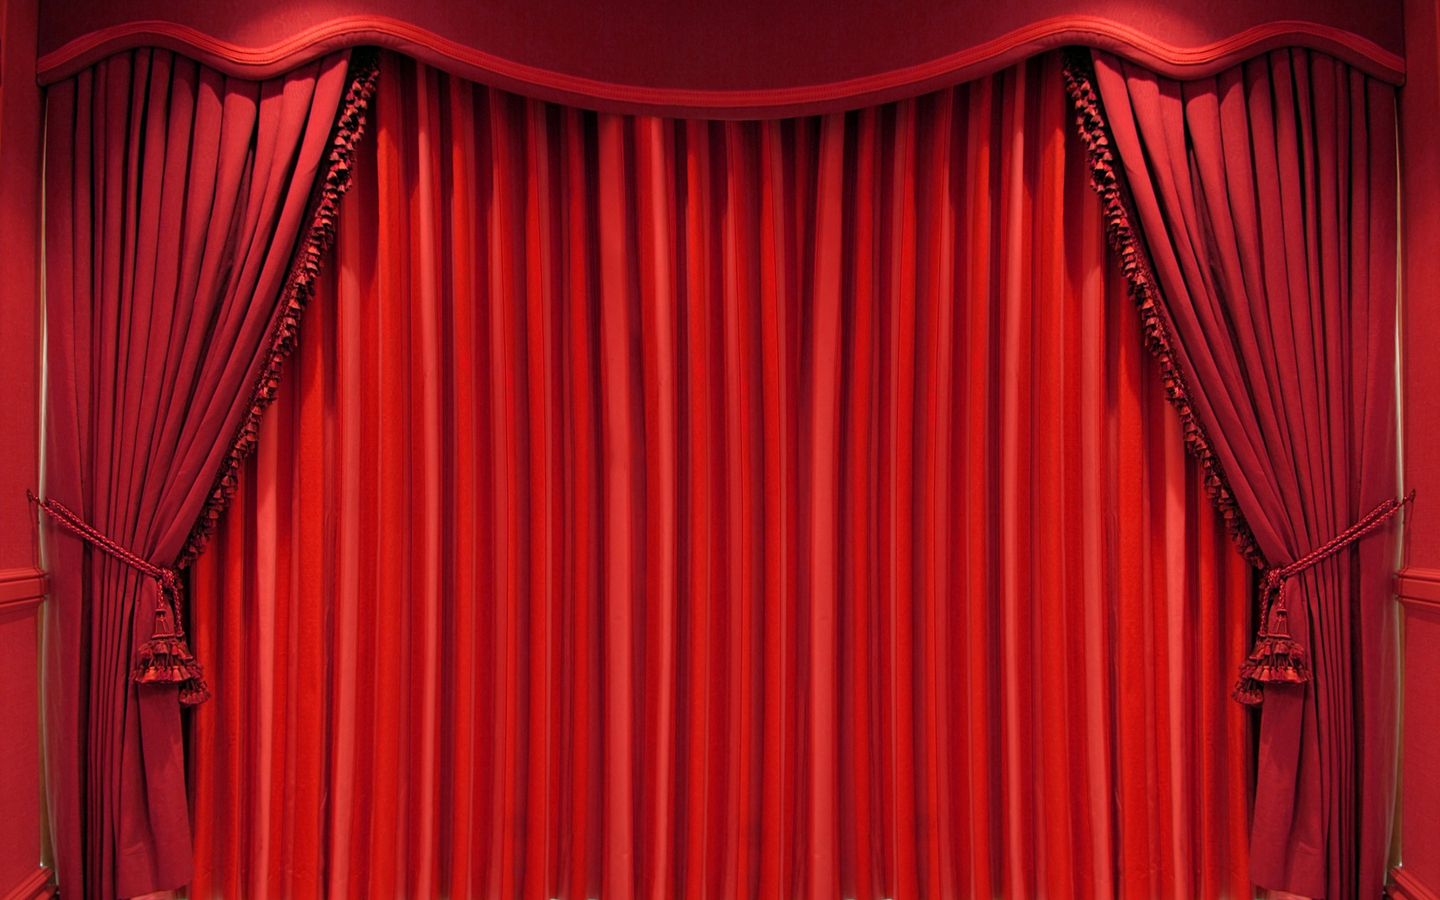 Free Animated Theater Curtains Clipart Clipartfest